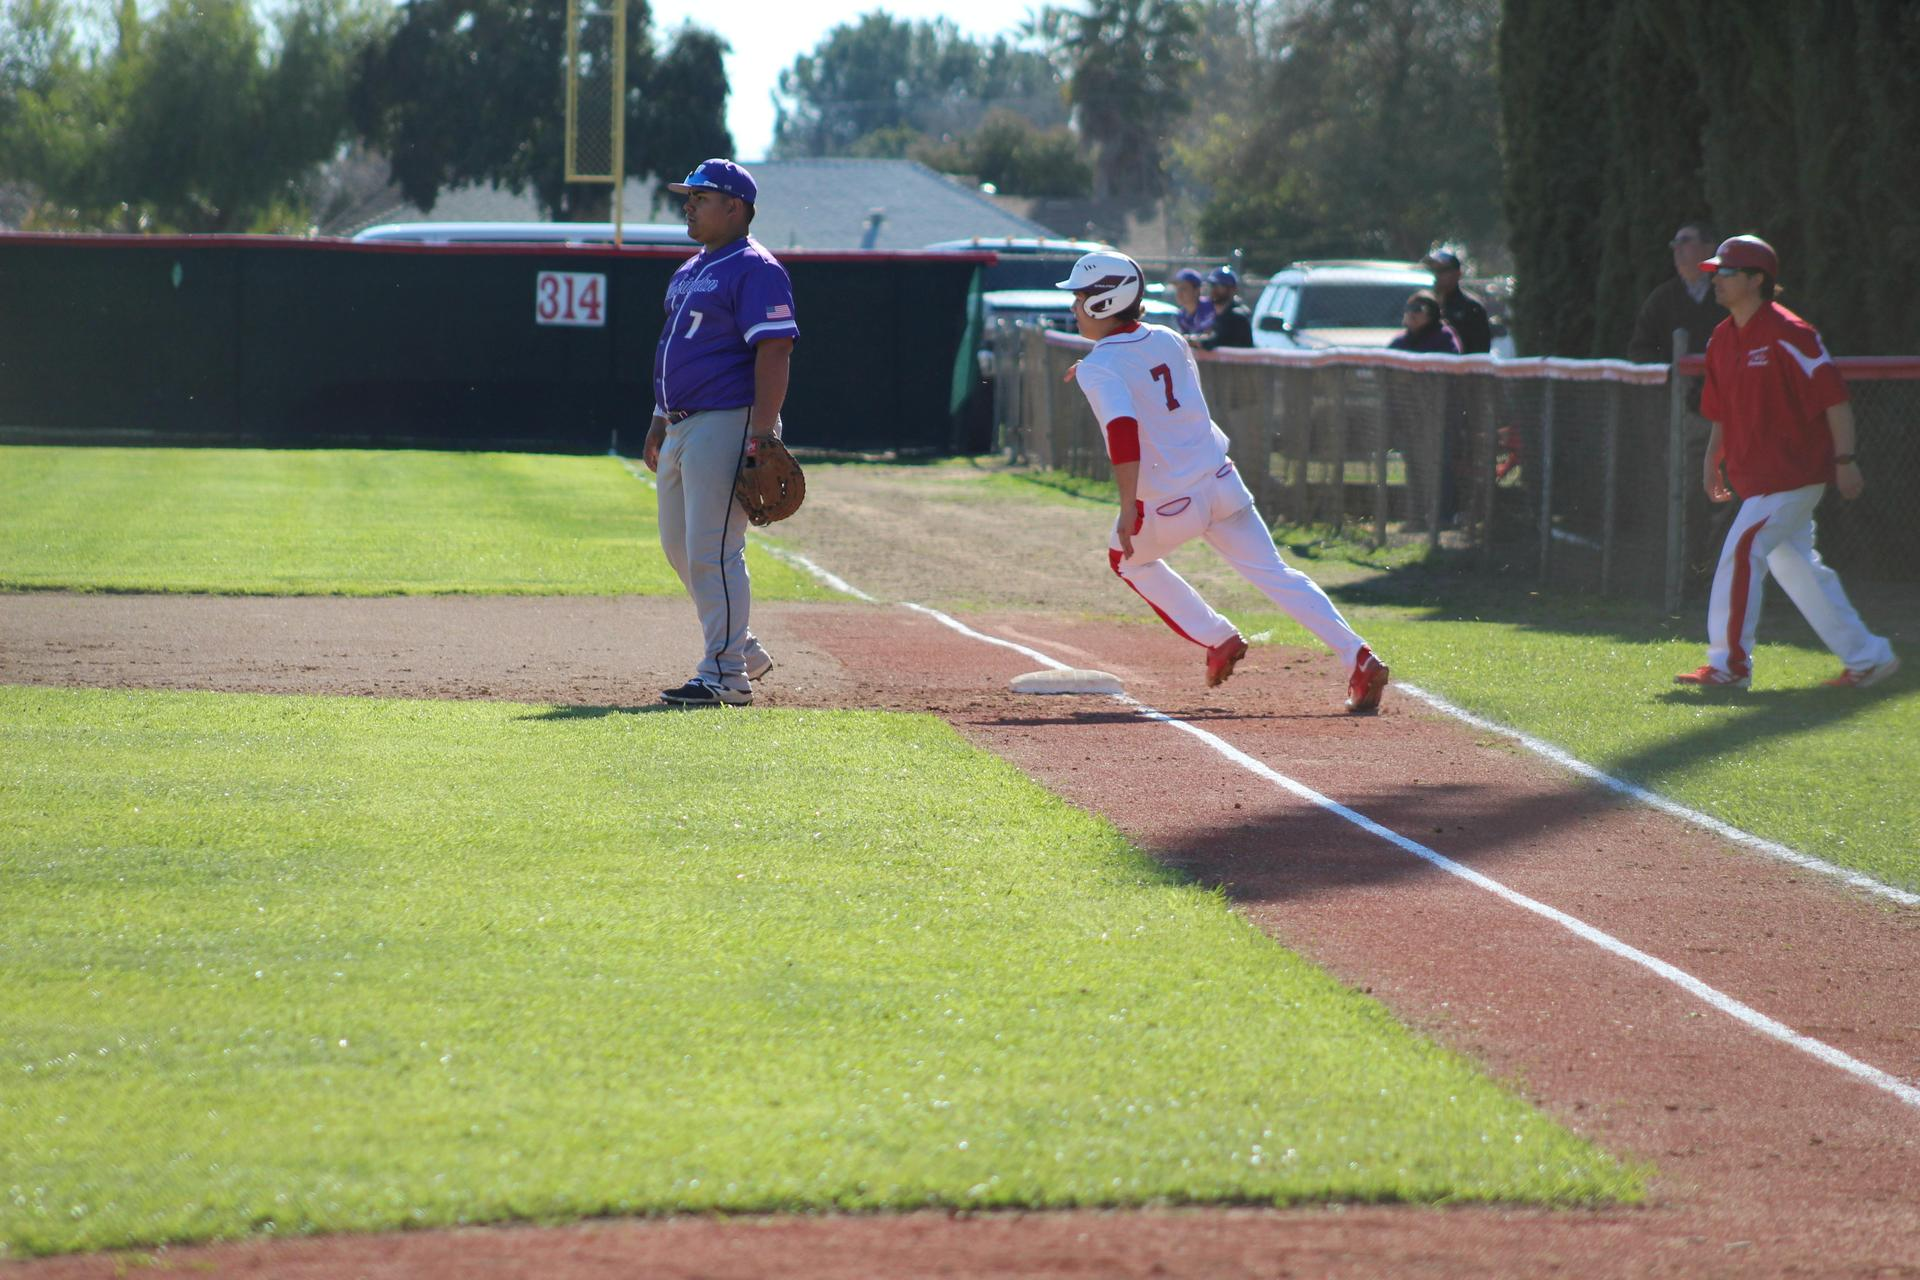 Baseball players in action against Washington Union